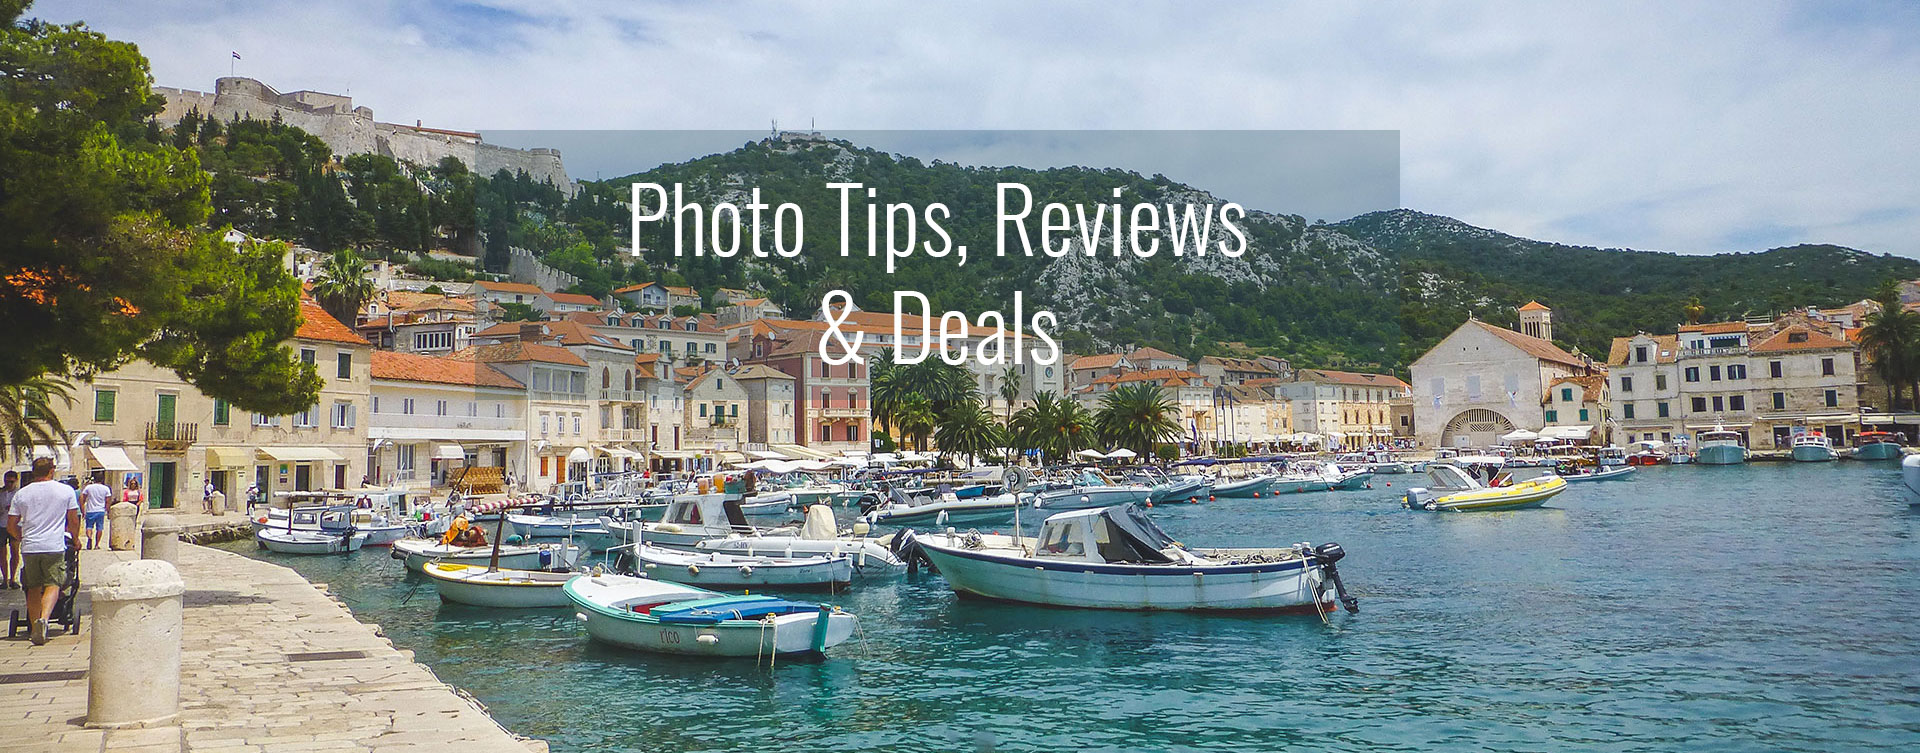 Photo tips, reviews and deals